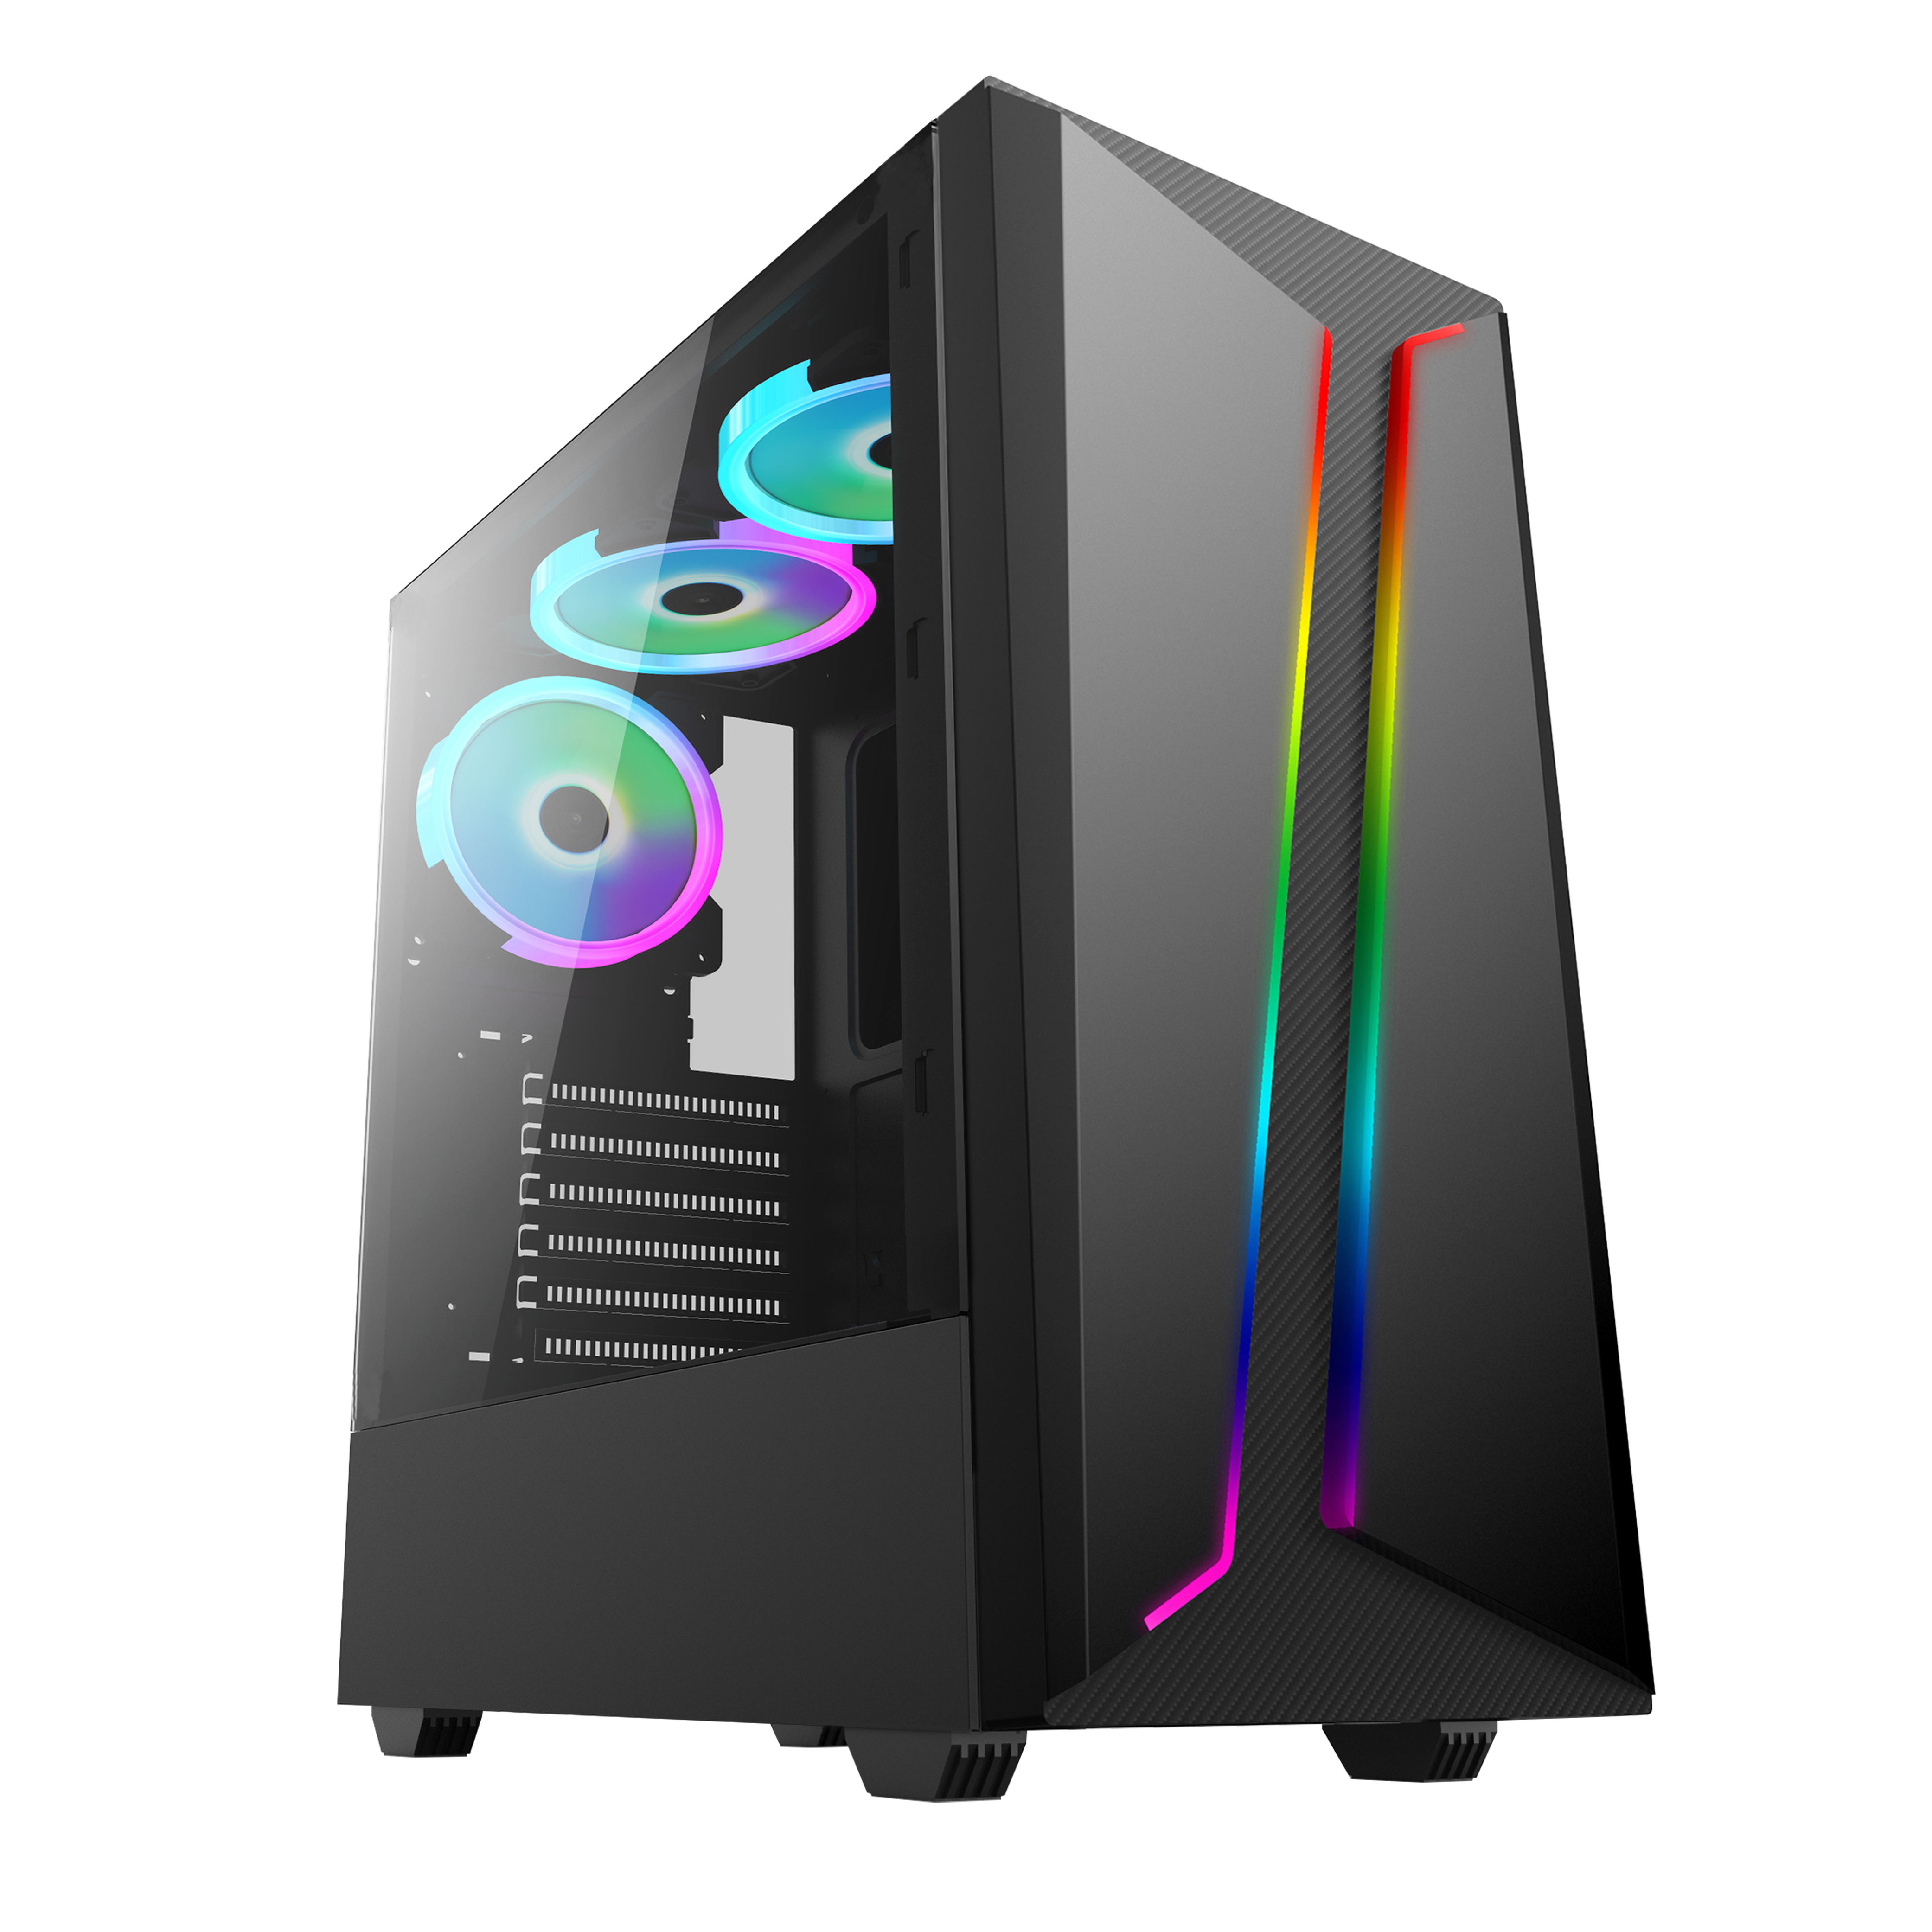 case for pc OEM brand compute table all in one customs logo custom transparent side panel full tower ATX computer pc case gaming